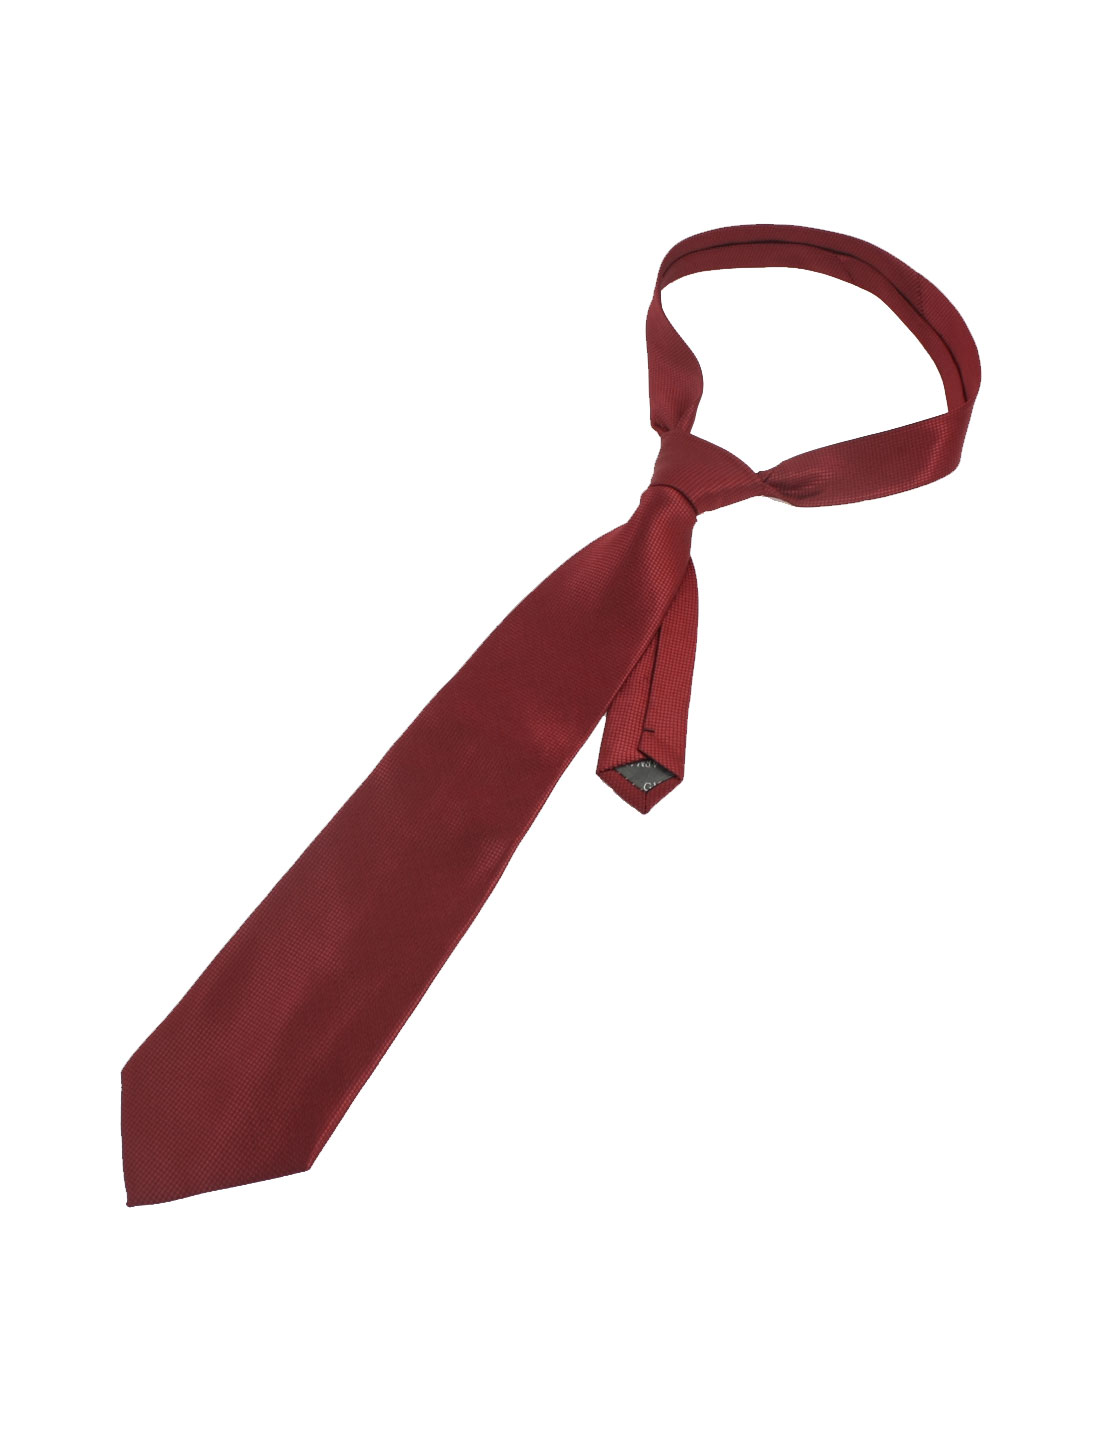 Plaid Pattern Style Self Tie Neckwear Necktie Red Black for Man